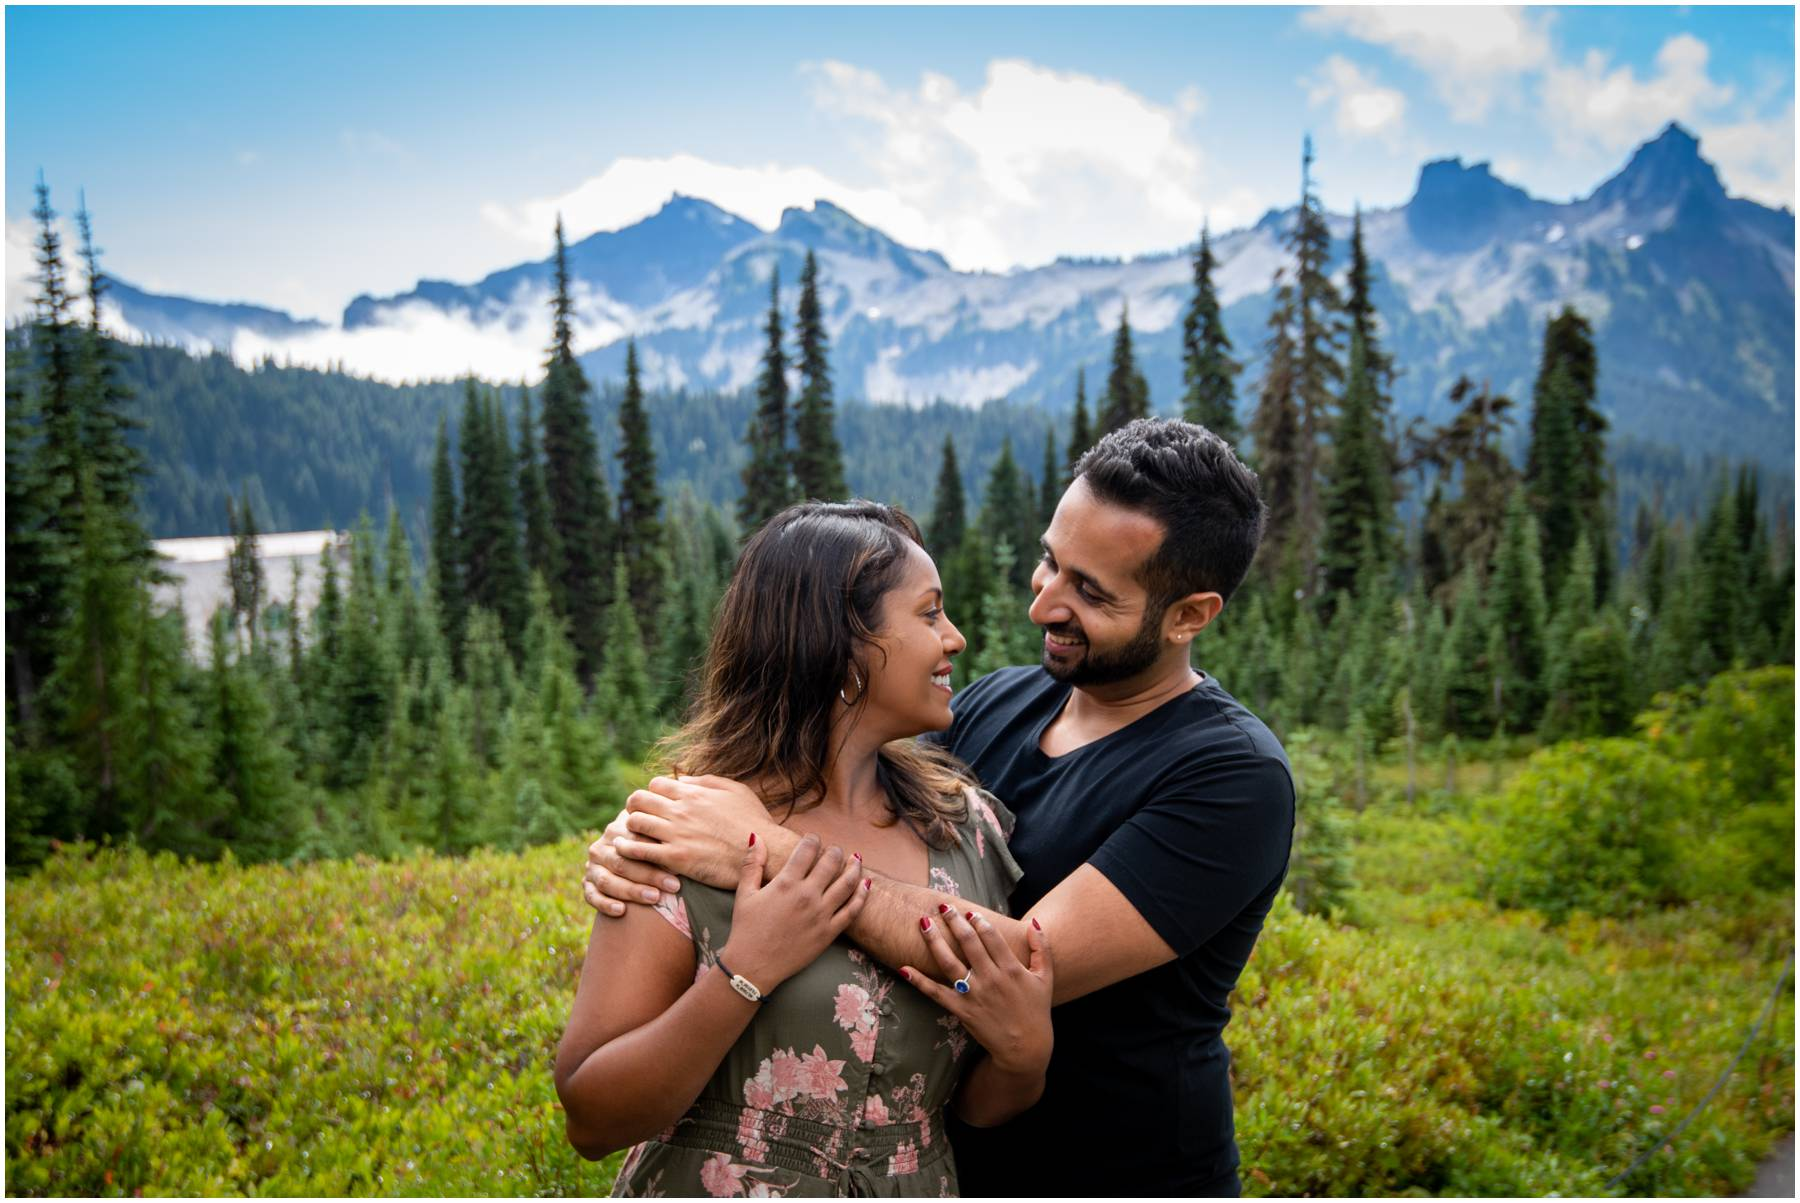 At Mt. Rainier for engagement photography session with Tatoosh Range in background.